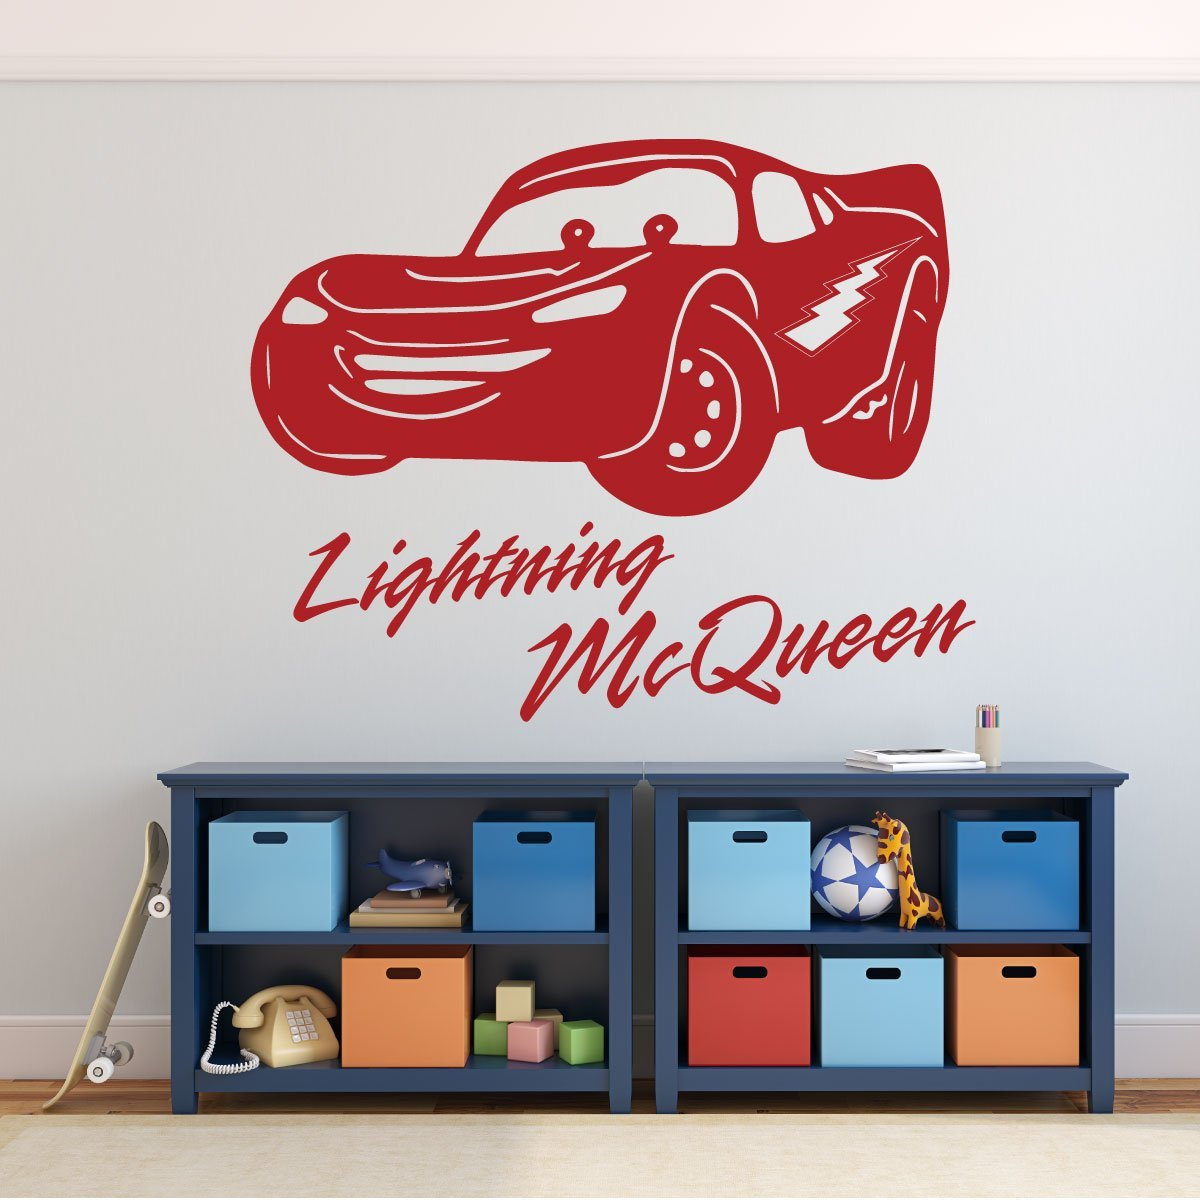 Disney Pixar Cars - Lightning McQueen Personalized Wall Decal - Removable Vinyl Wall Decoration for Boy's Room, Playroom, Gameroom or Dr. Office